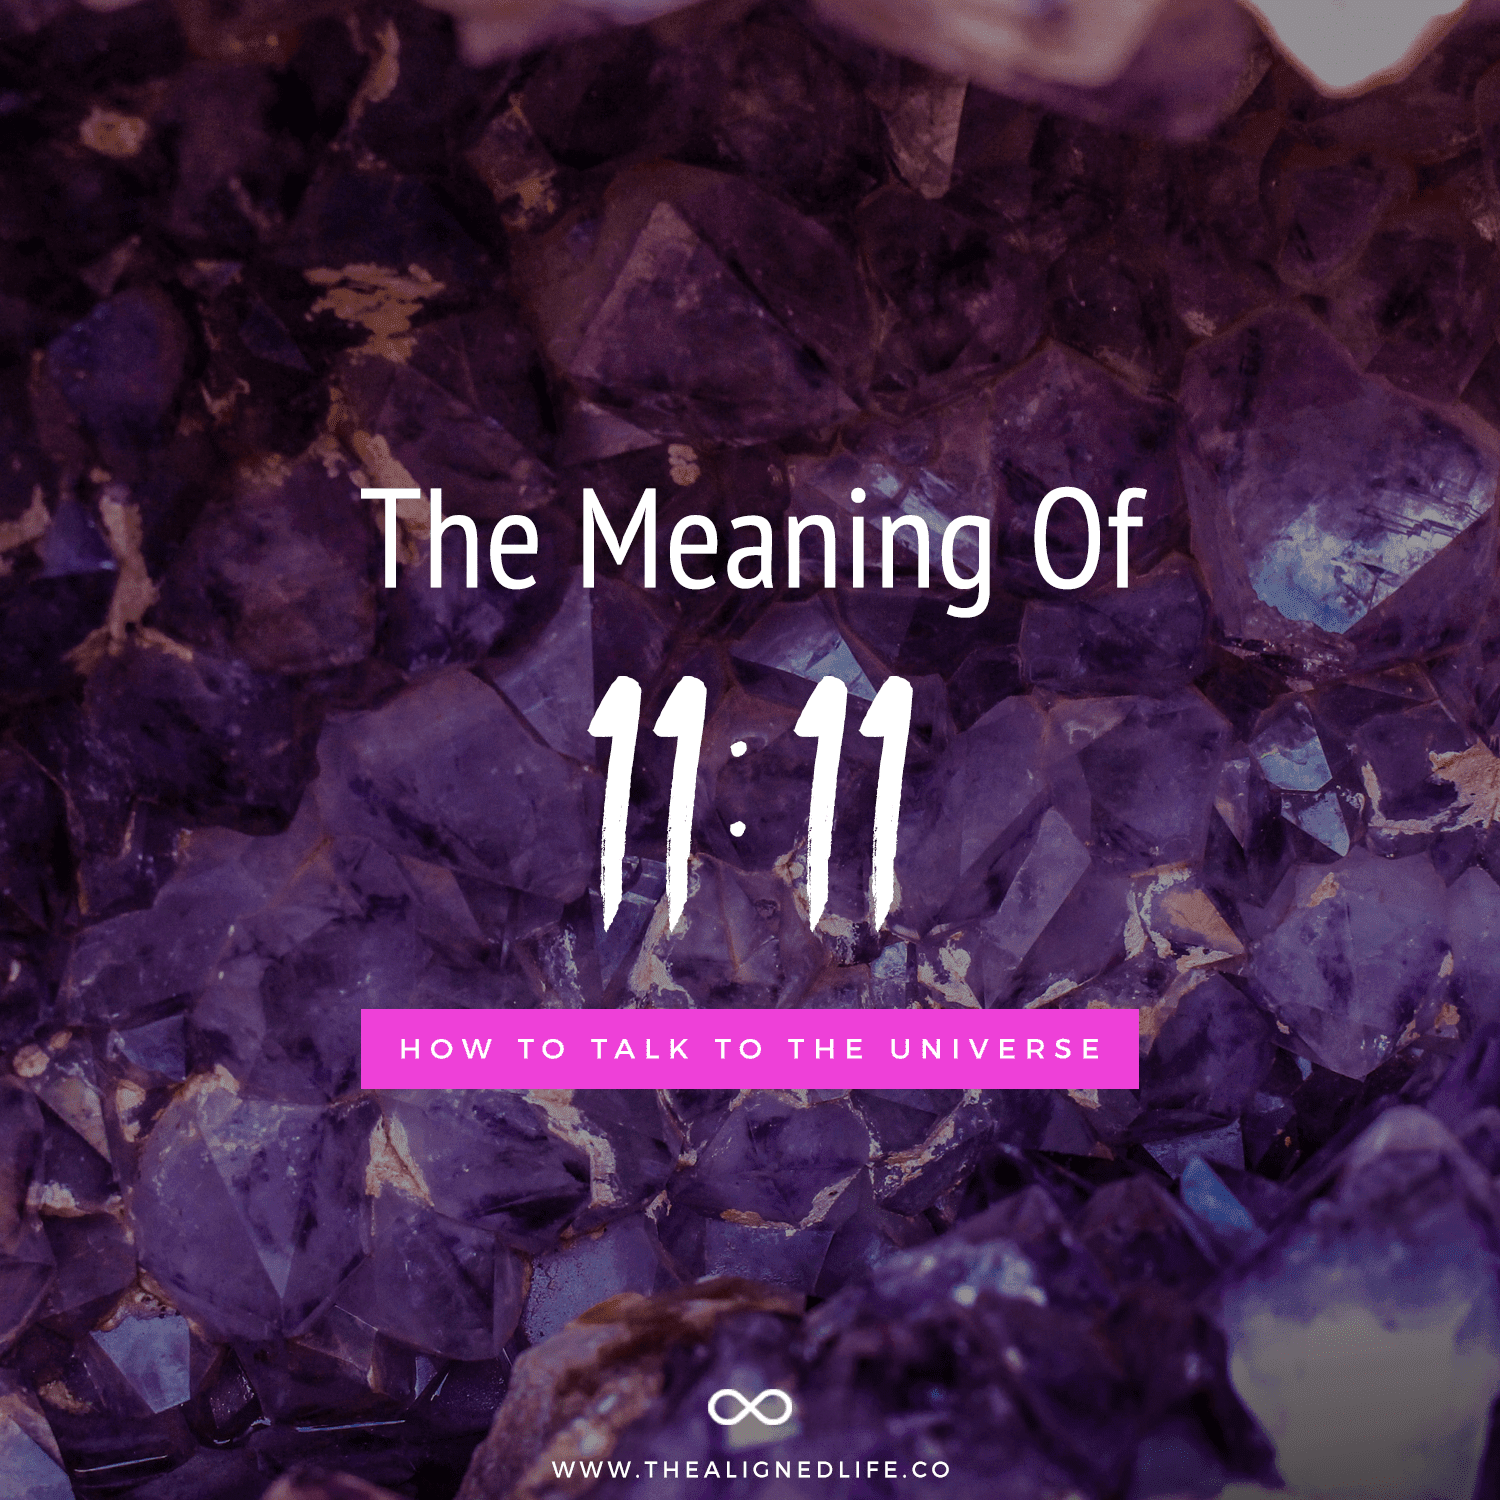 How To Talk To The Universe: What Does 1111 Mean?